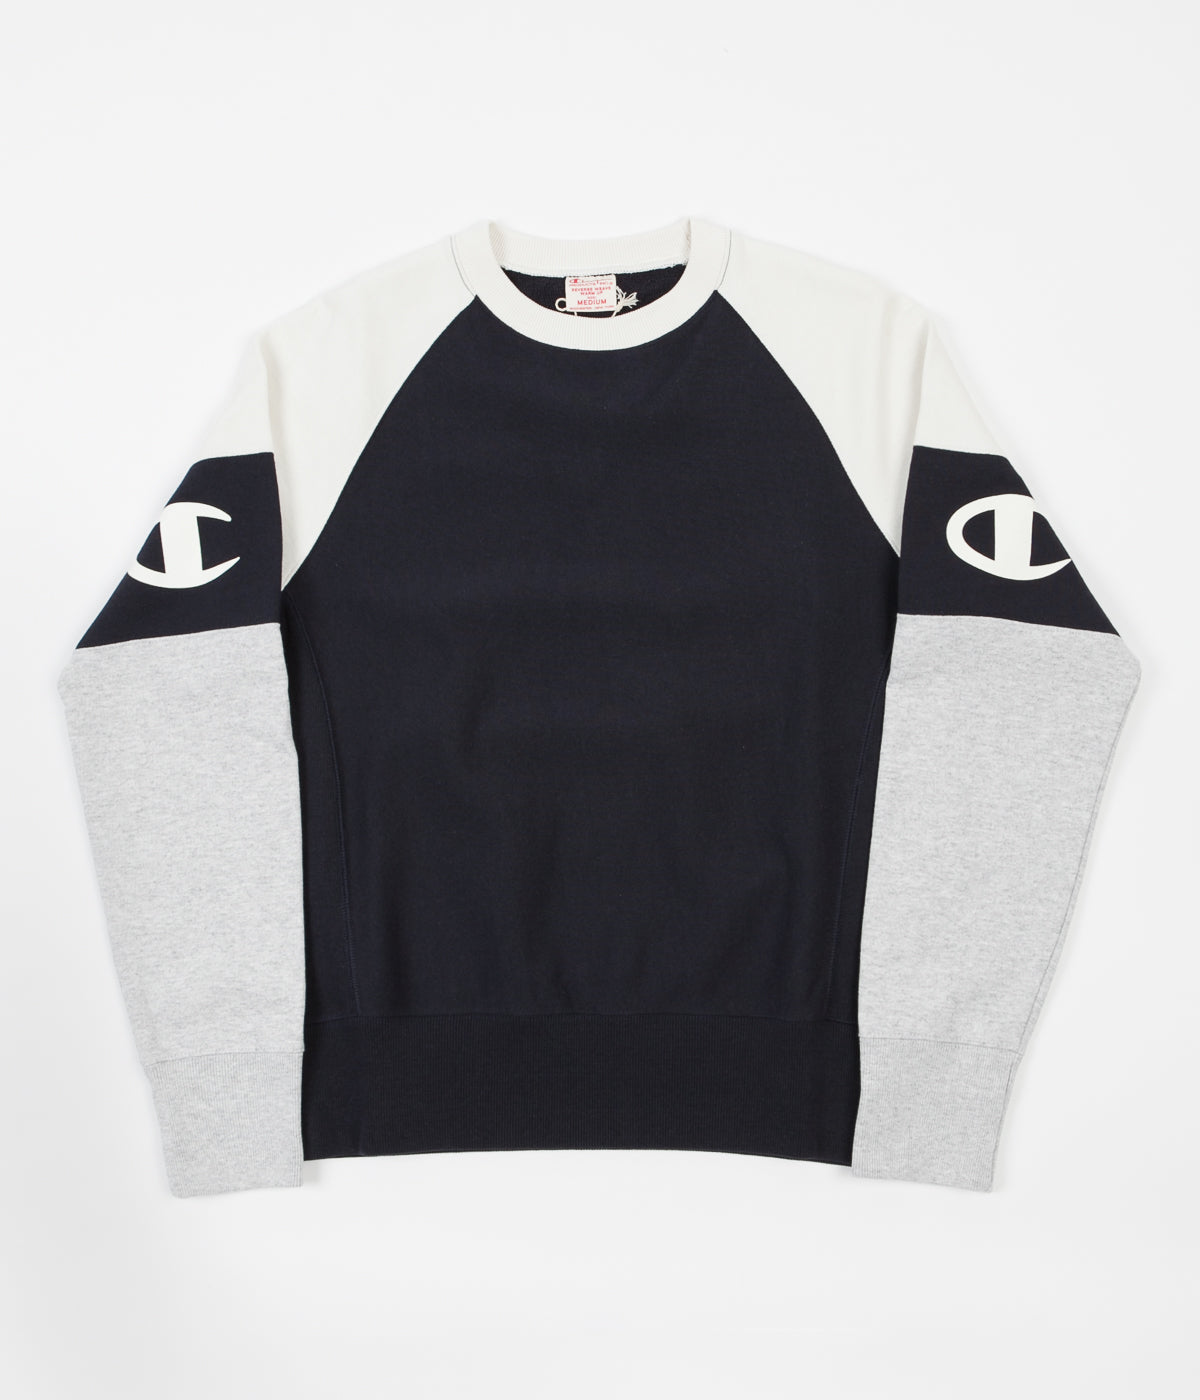 Champion Reverse Weave Two Tone Crewneck Sweatshirt - Navy / Cream